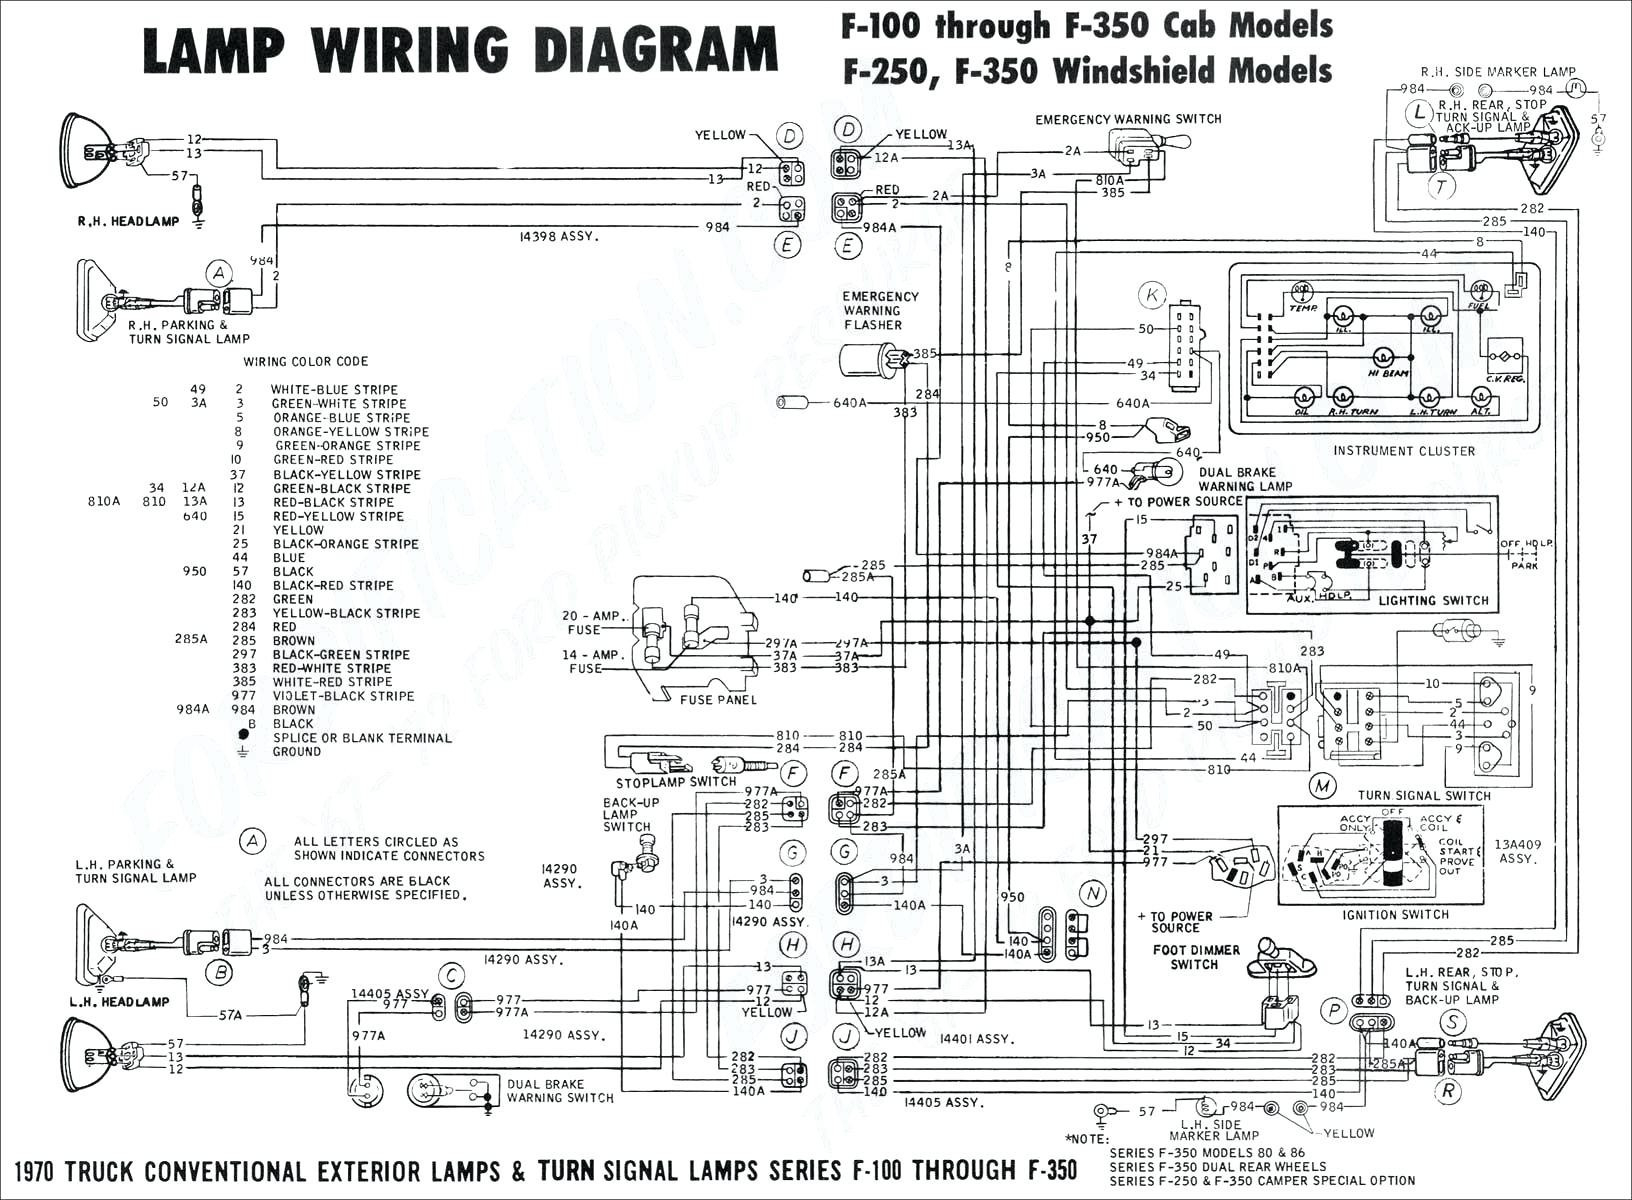 Trailmaster 150 Wiring Diagram Cessna Free Bgmt Data 1985 F150 Headlight Wire Schema U2022 Rh Sellfie Co Flying Club